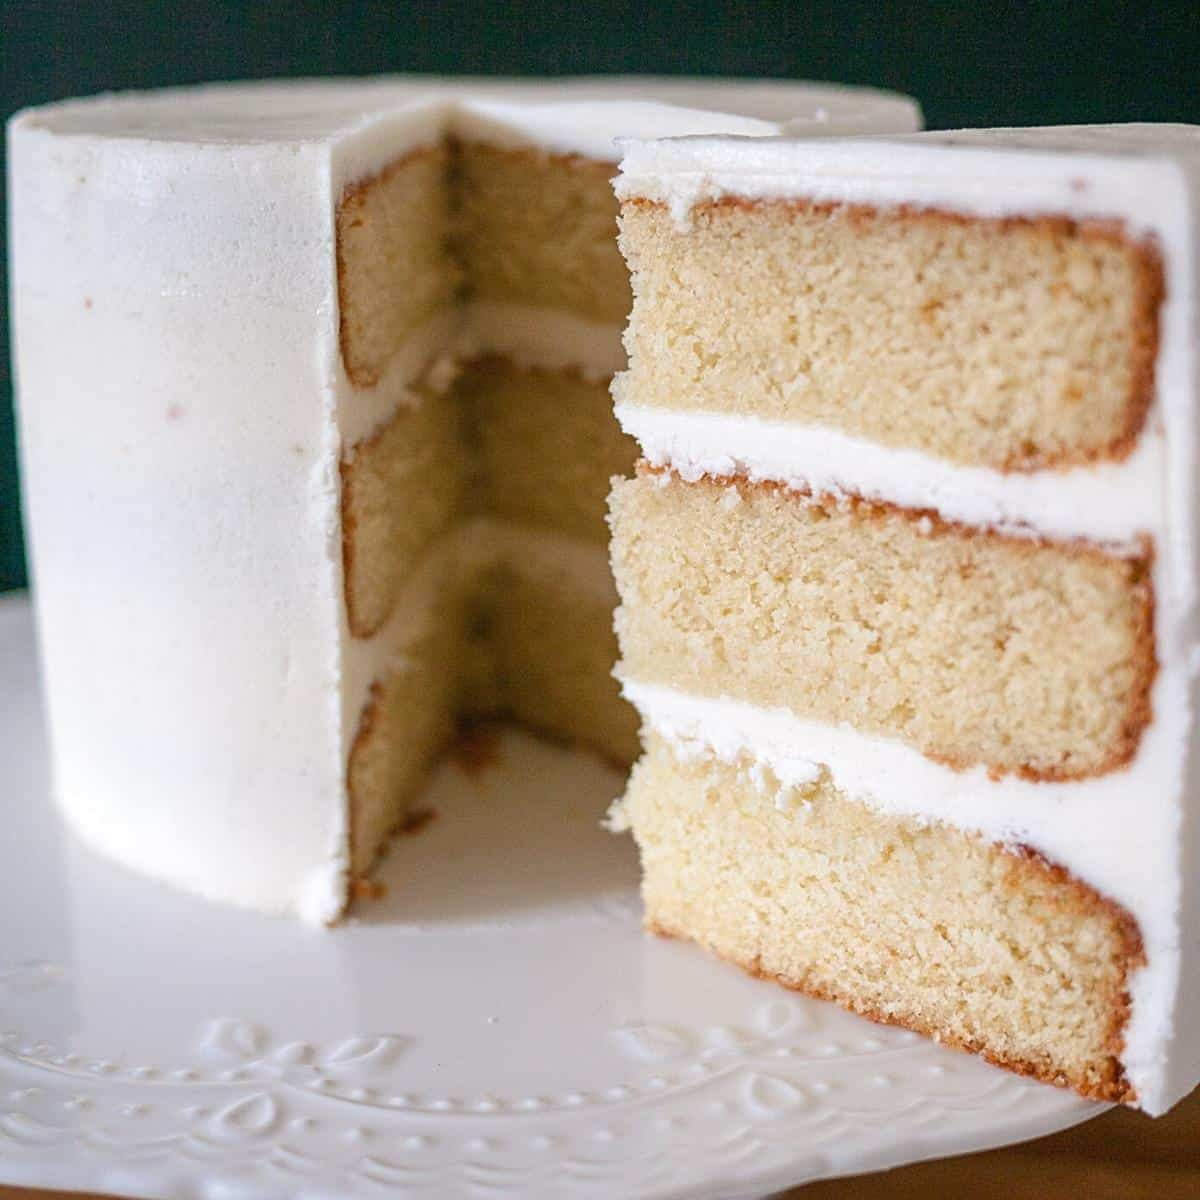 A sliced vanilla cake on a cake stand.